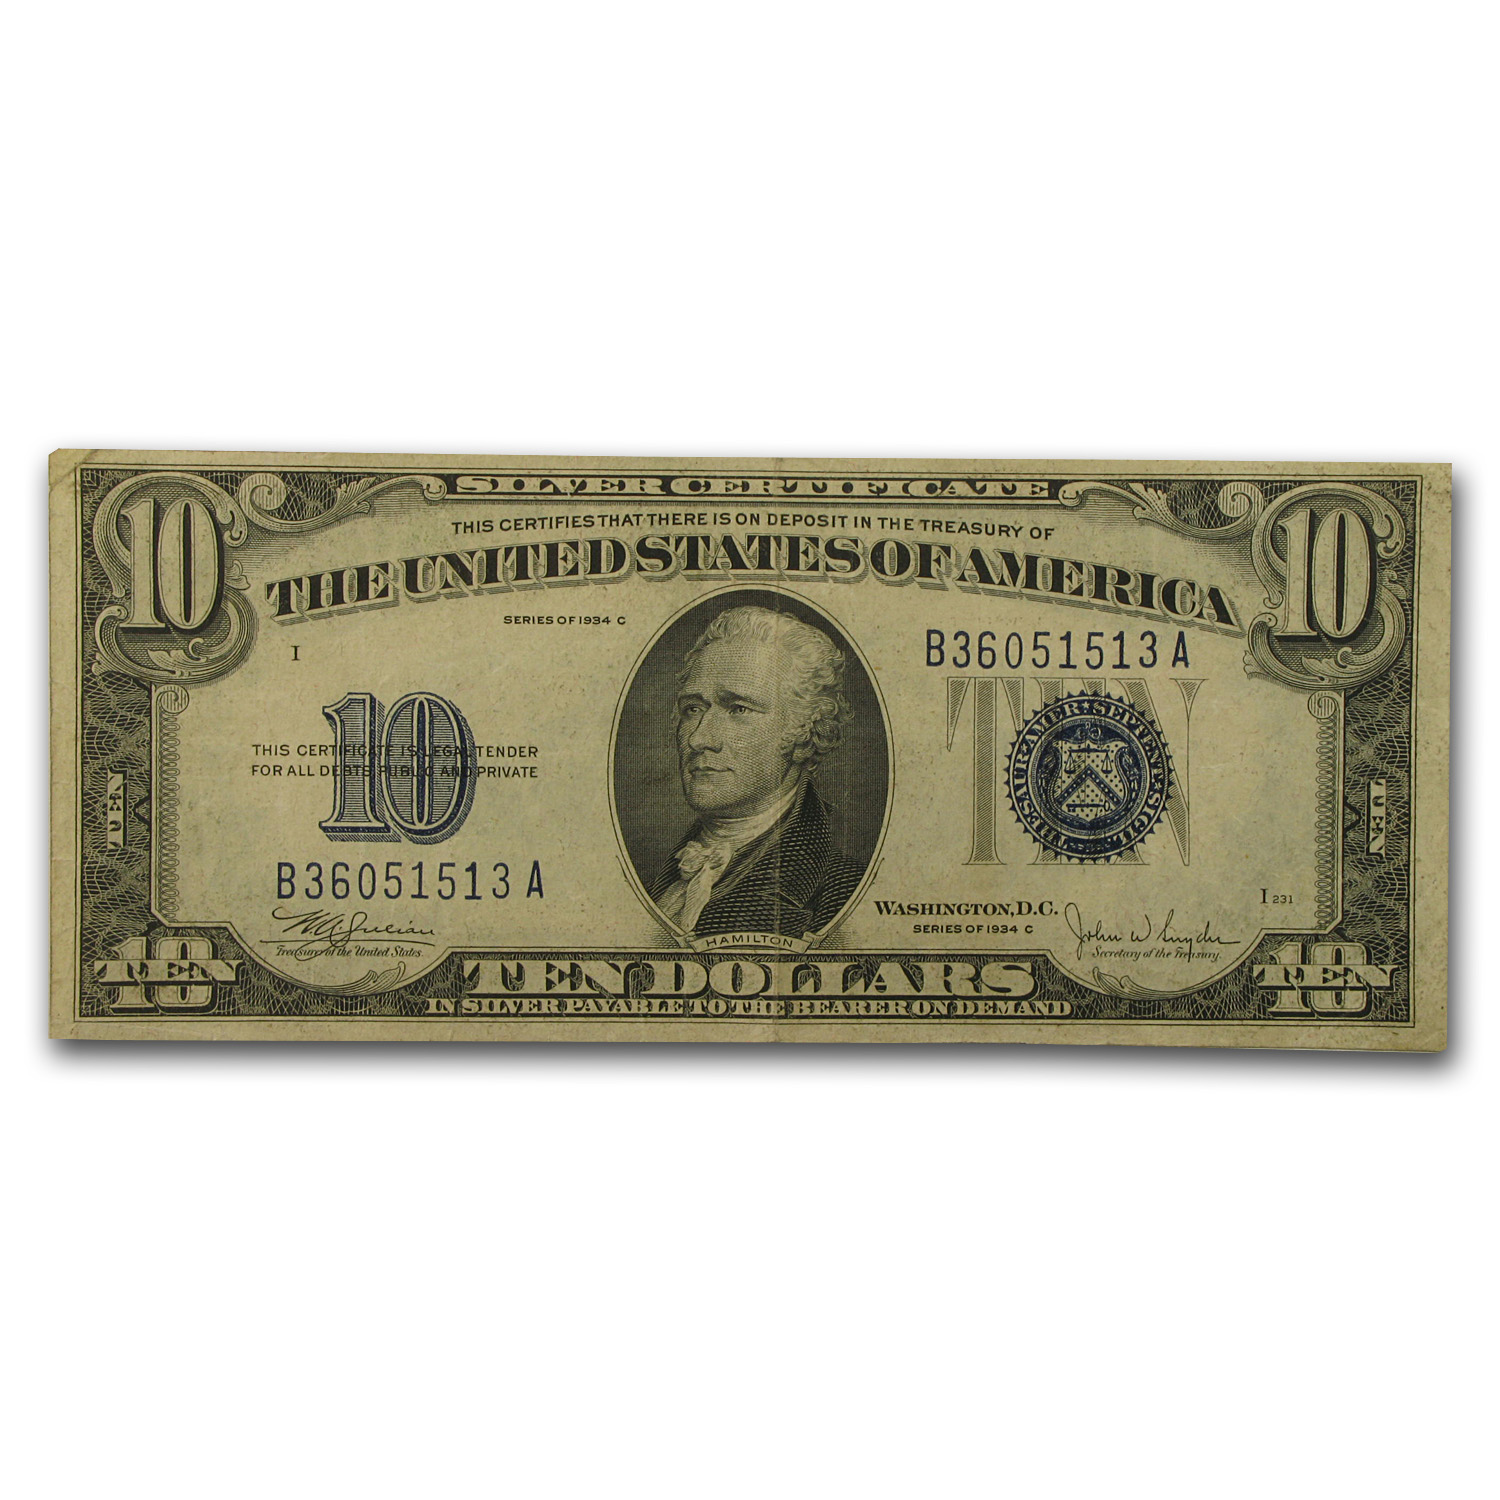 1934 thru 1934-D $10 Silver Certificates - (Very Fine)